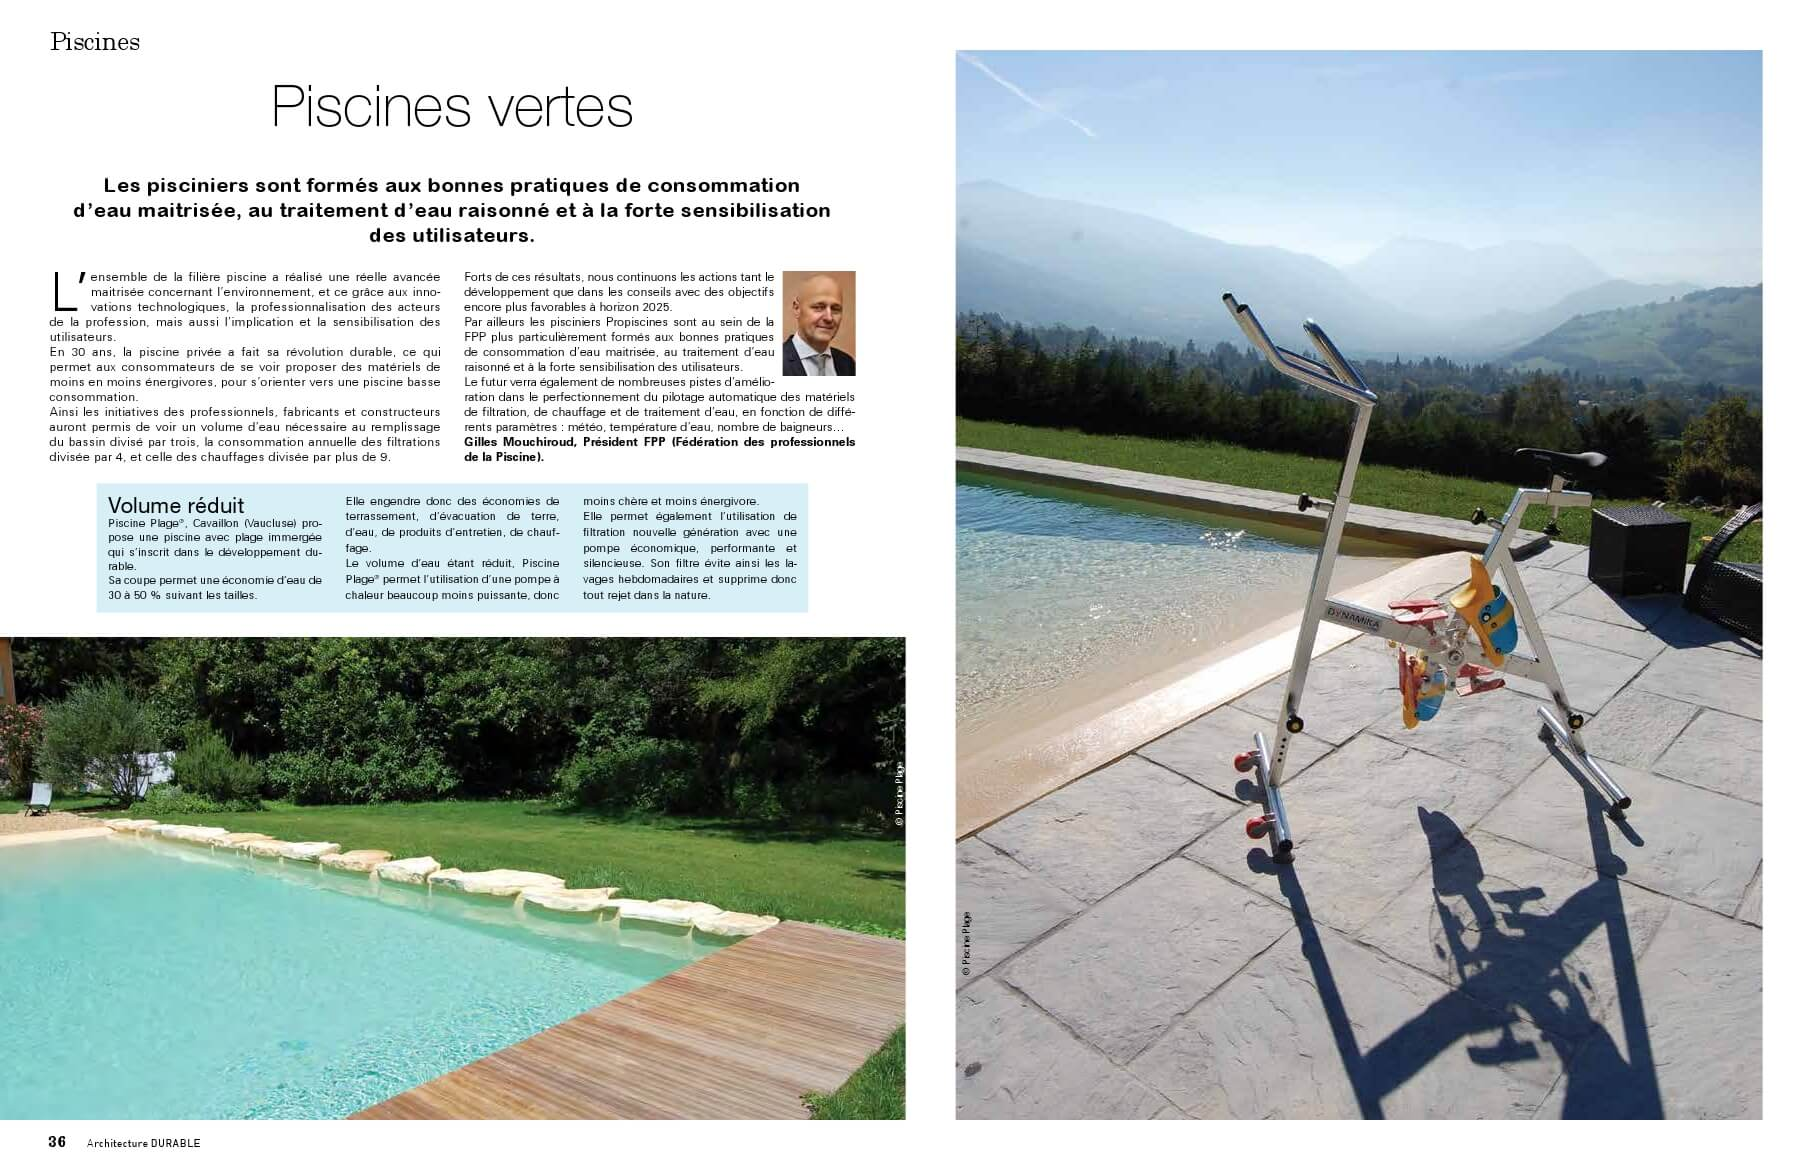 Piscine-plage-Architecture-durable-n24